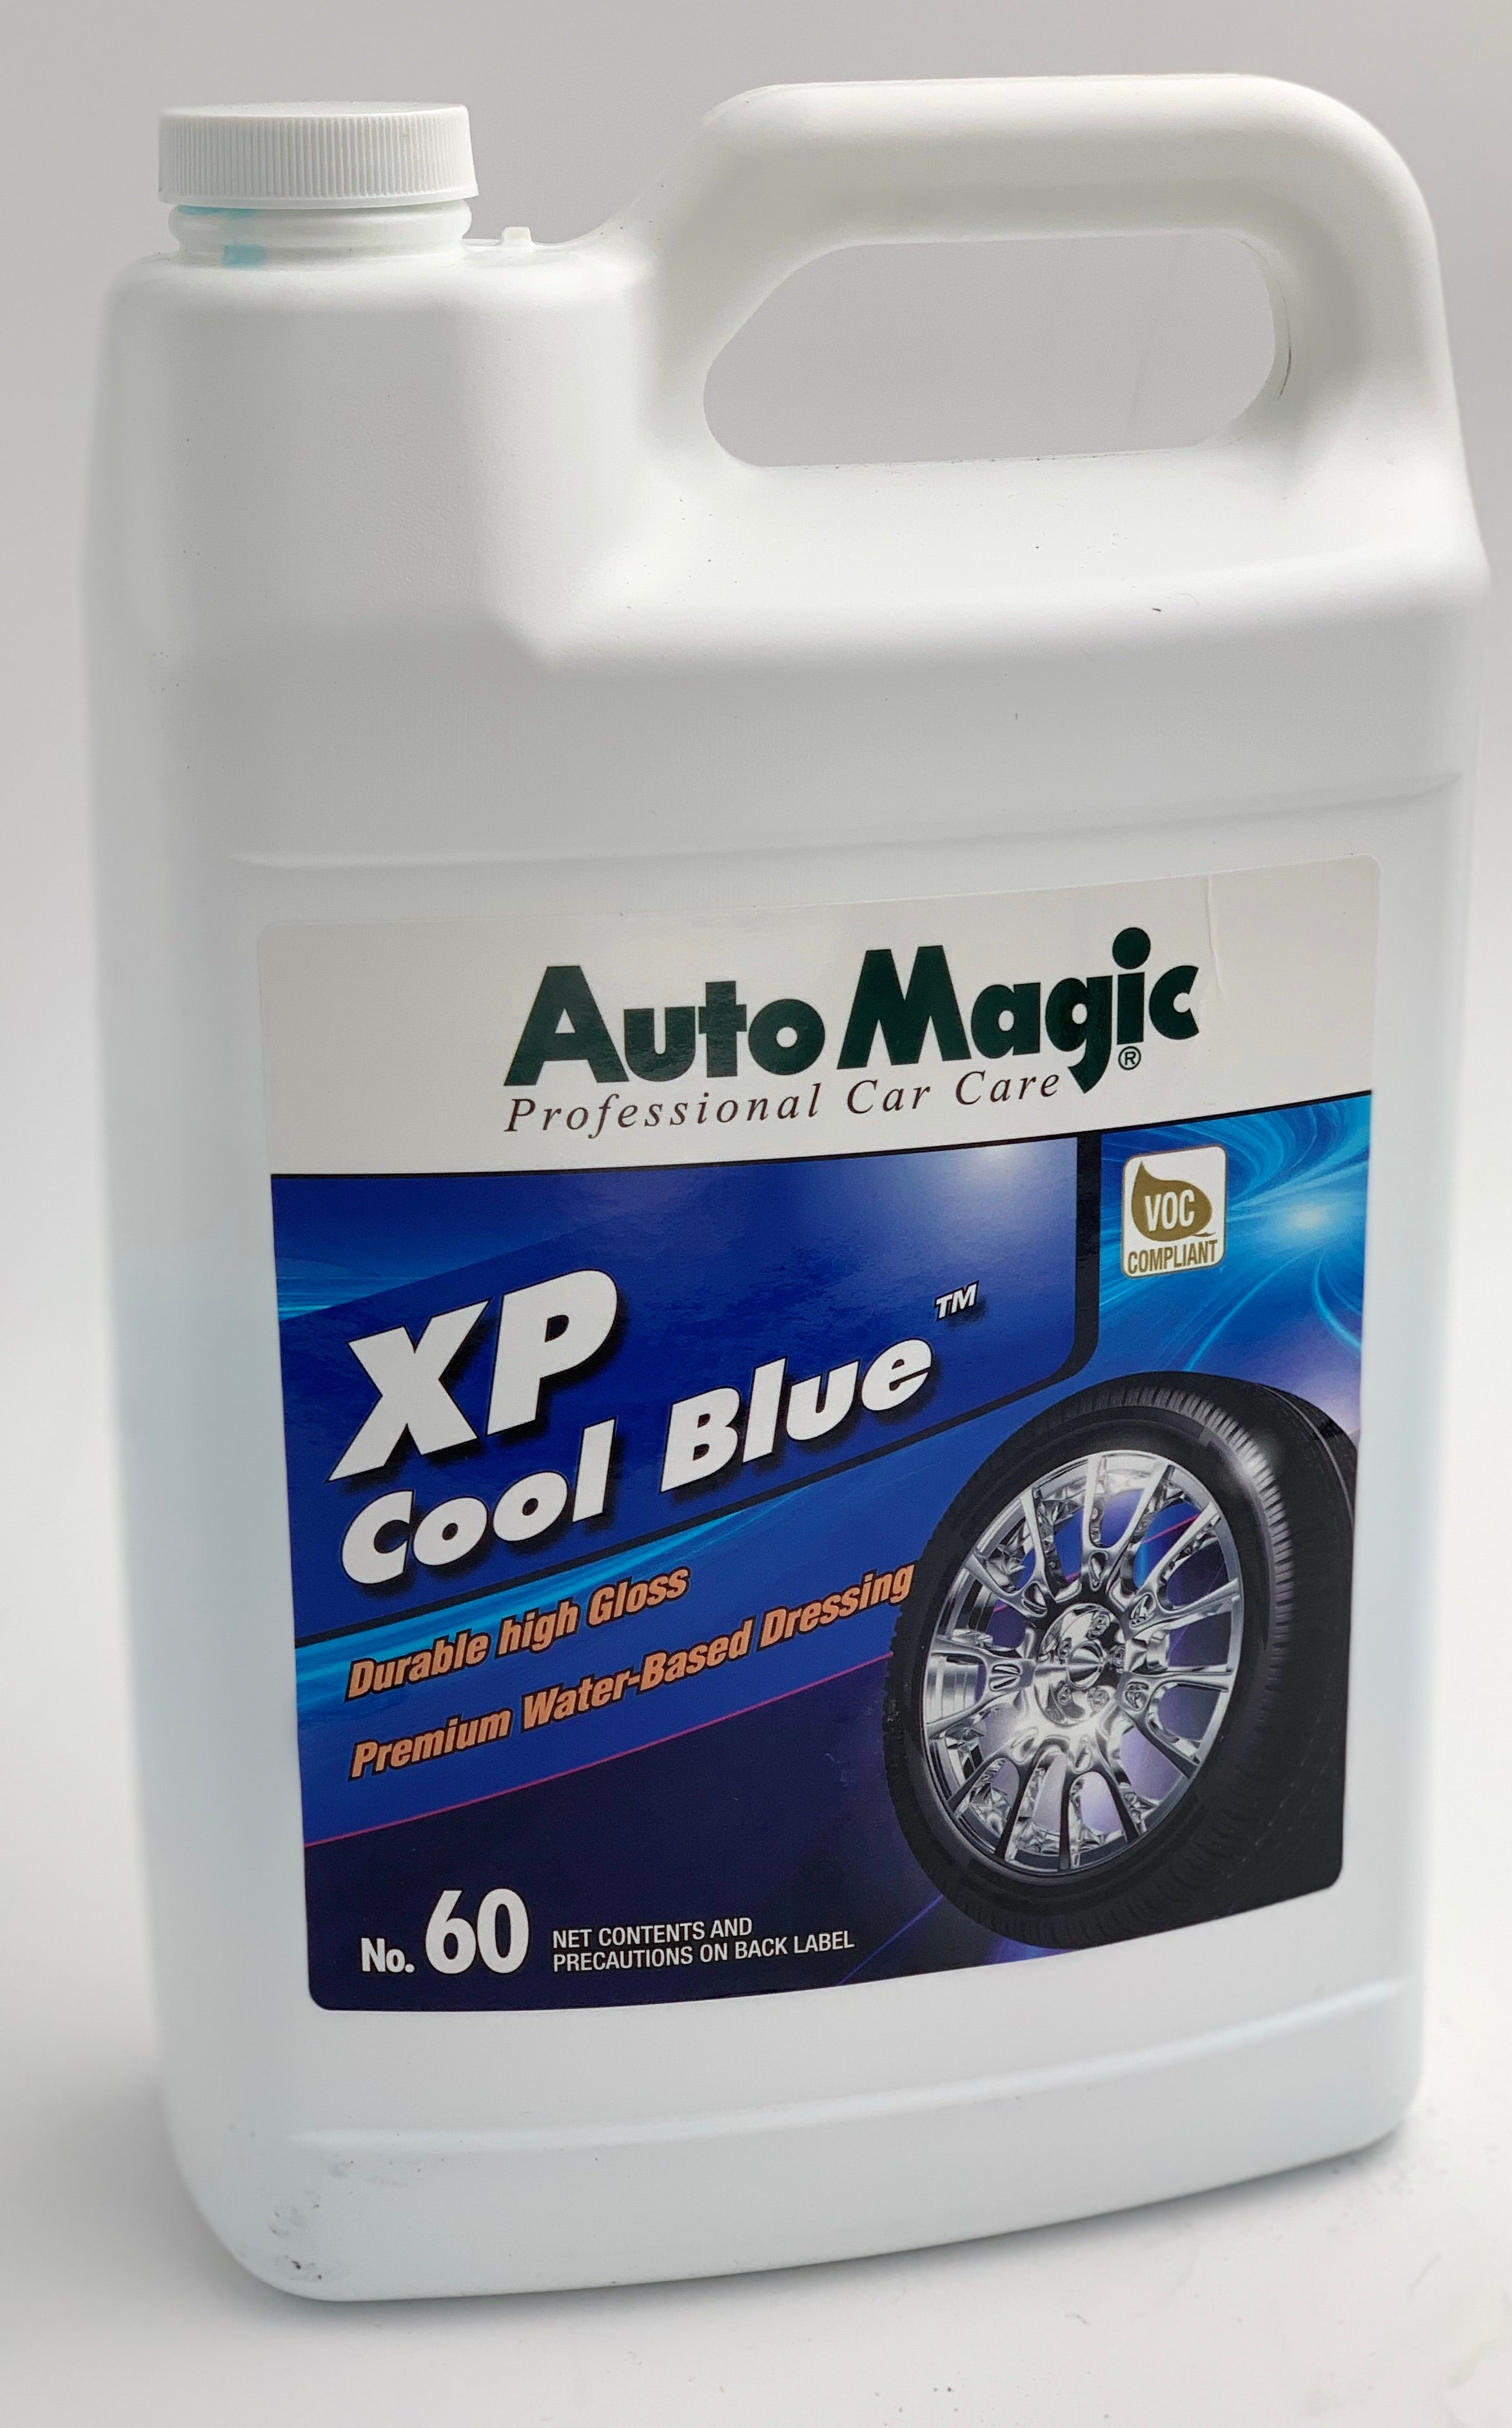 AutoMagic XP Cool Blue. 1 Gal.